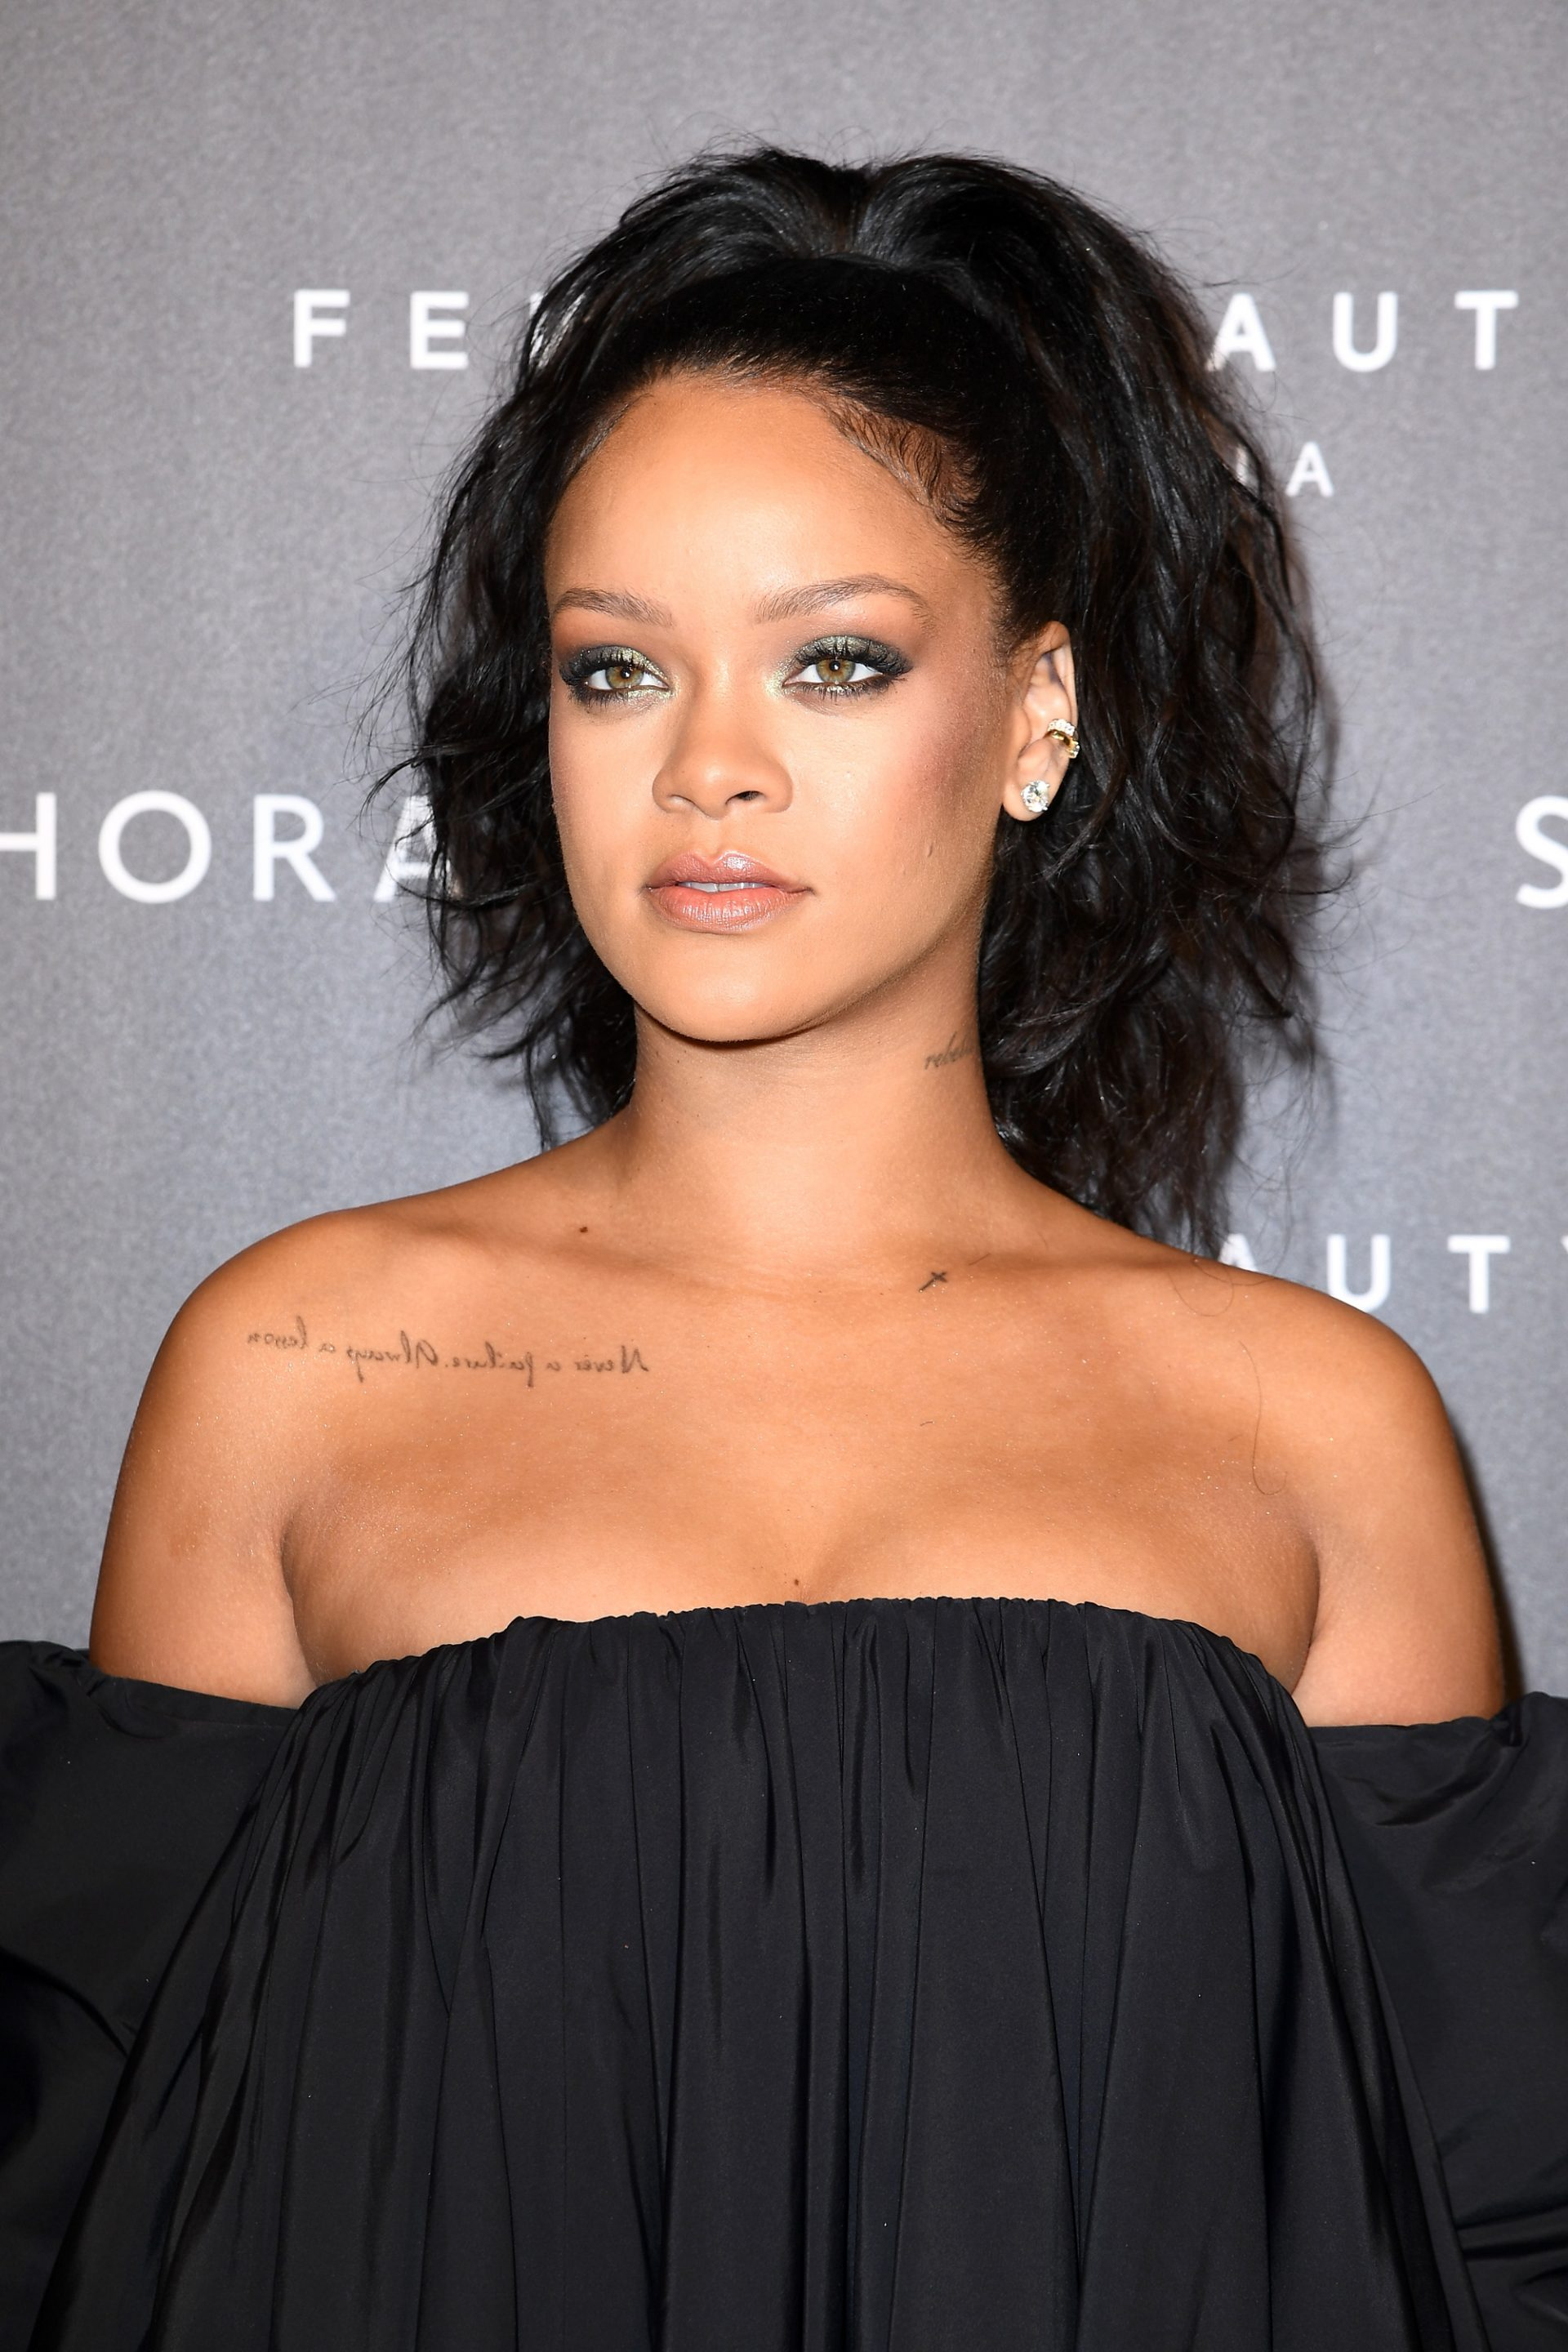 PARIS, FRANCE - SEPTEMBER 21:  Rihanna attends the Fenty Beauty By Rihanna Paris Launch Party hosted by Sephora at Jardin des Tuileries on September 21, 2017 in Paris, France.  (Photo by Pascal Le Segretain/Getty Images for Fenty Beauty) *** Local Caption *** Rihanna